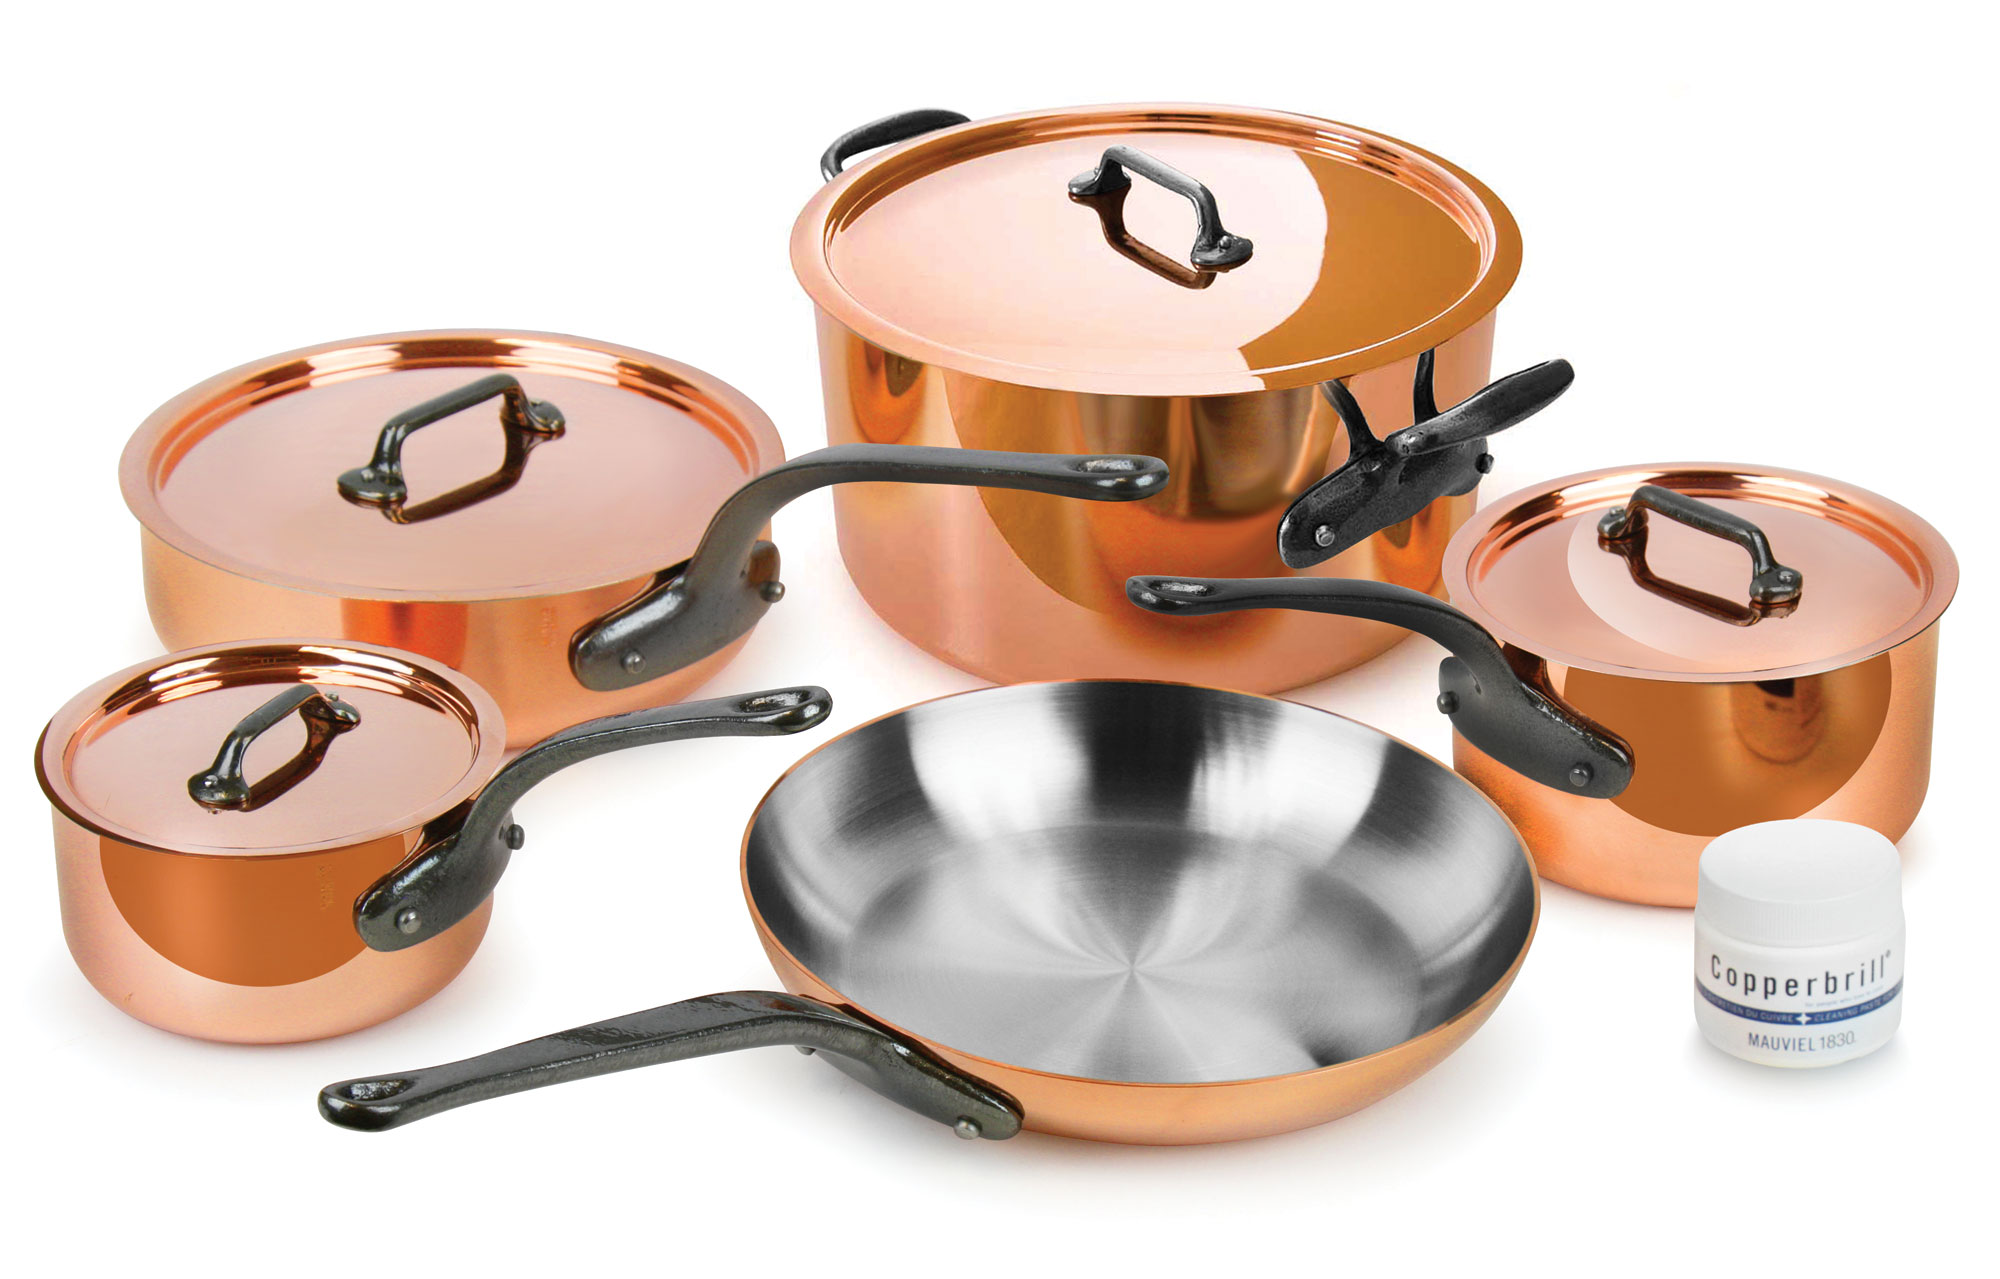 mauviel 250c copper cookware set 9piece cutlery and more - Mauviel